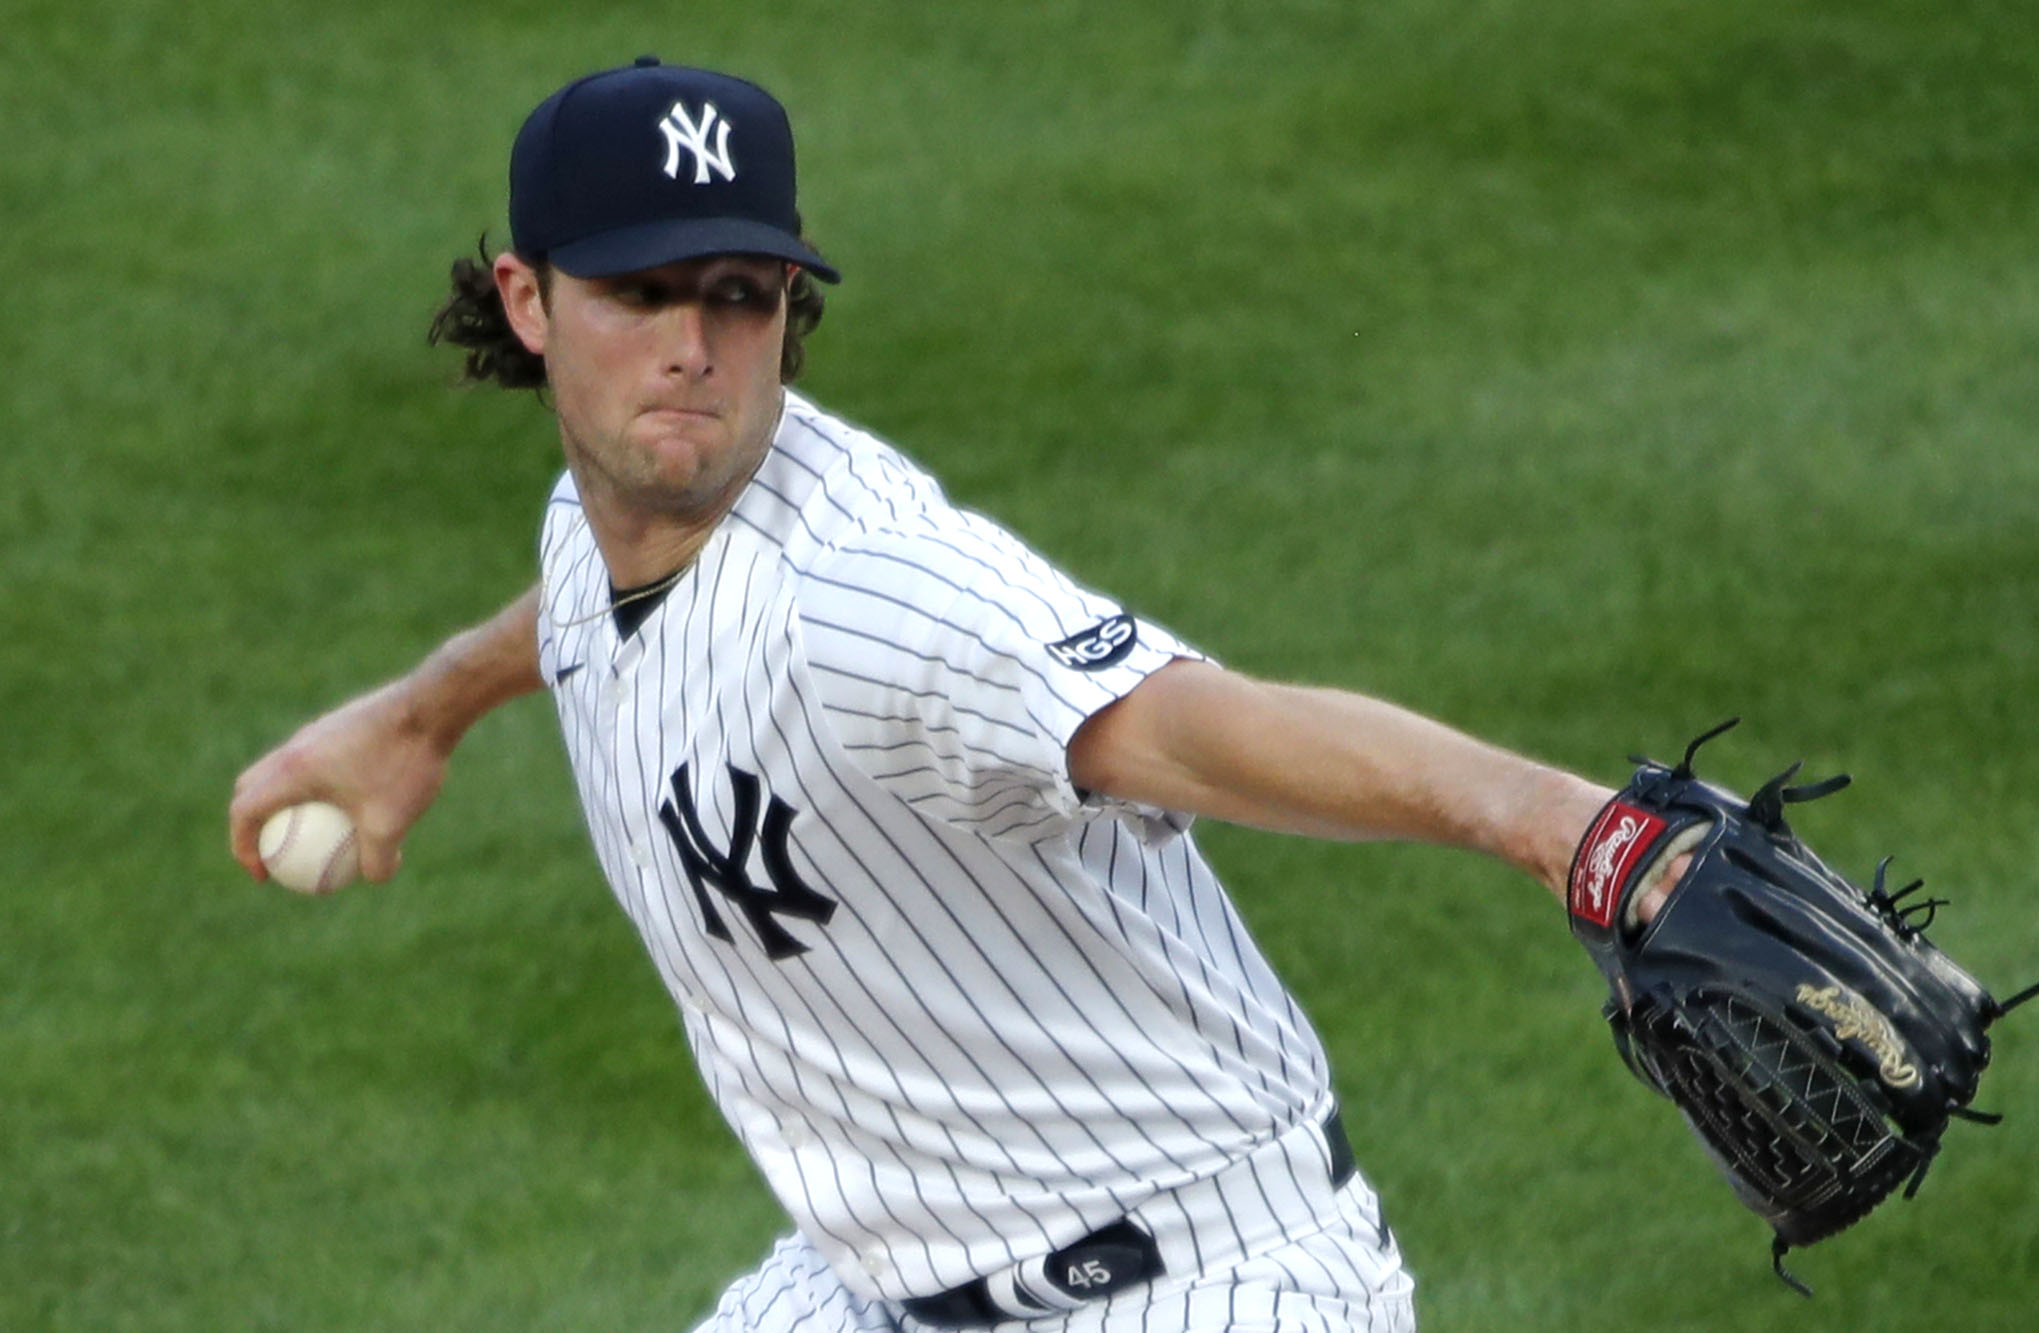 Unbeaten Gerrit Cole believes he has more to give Yankees